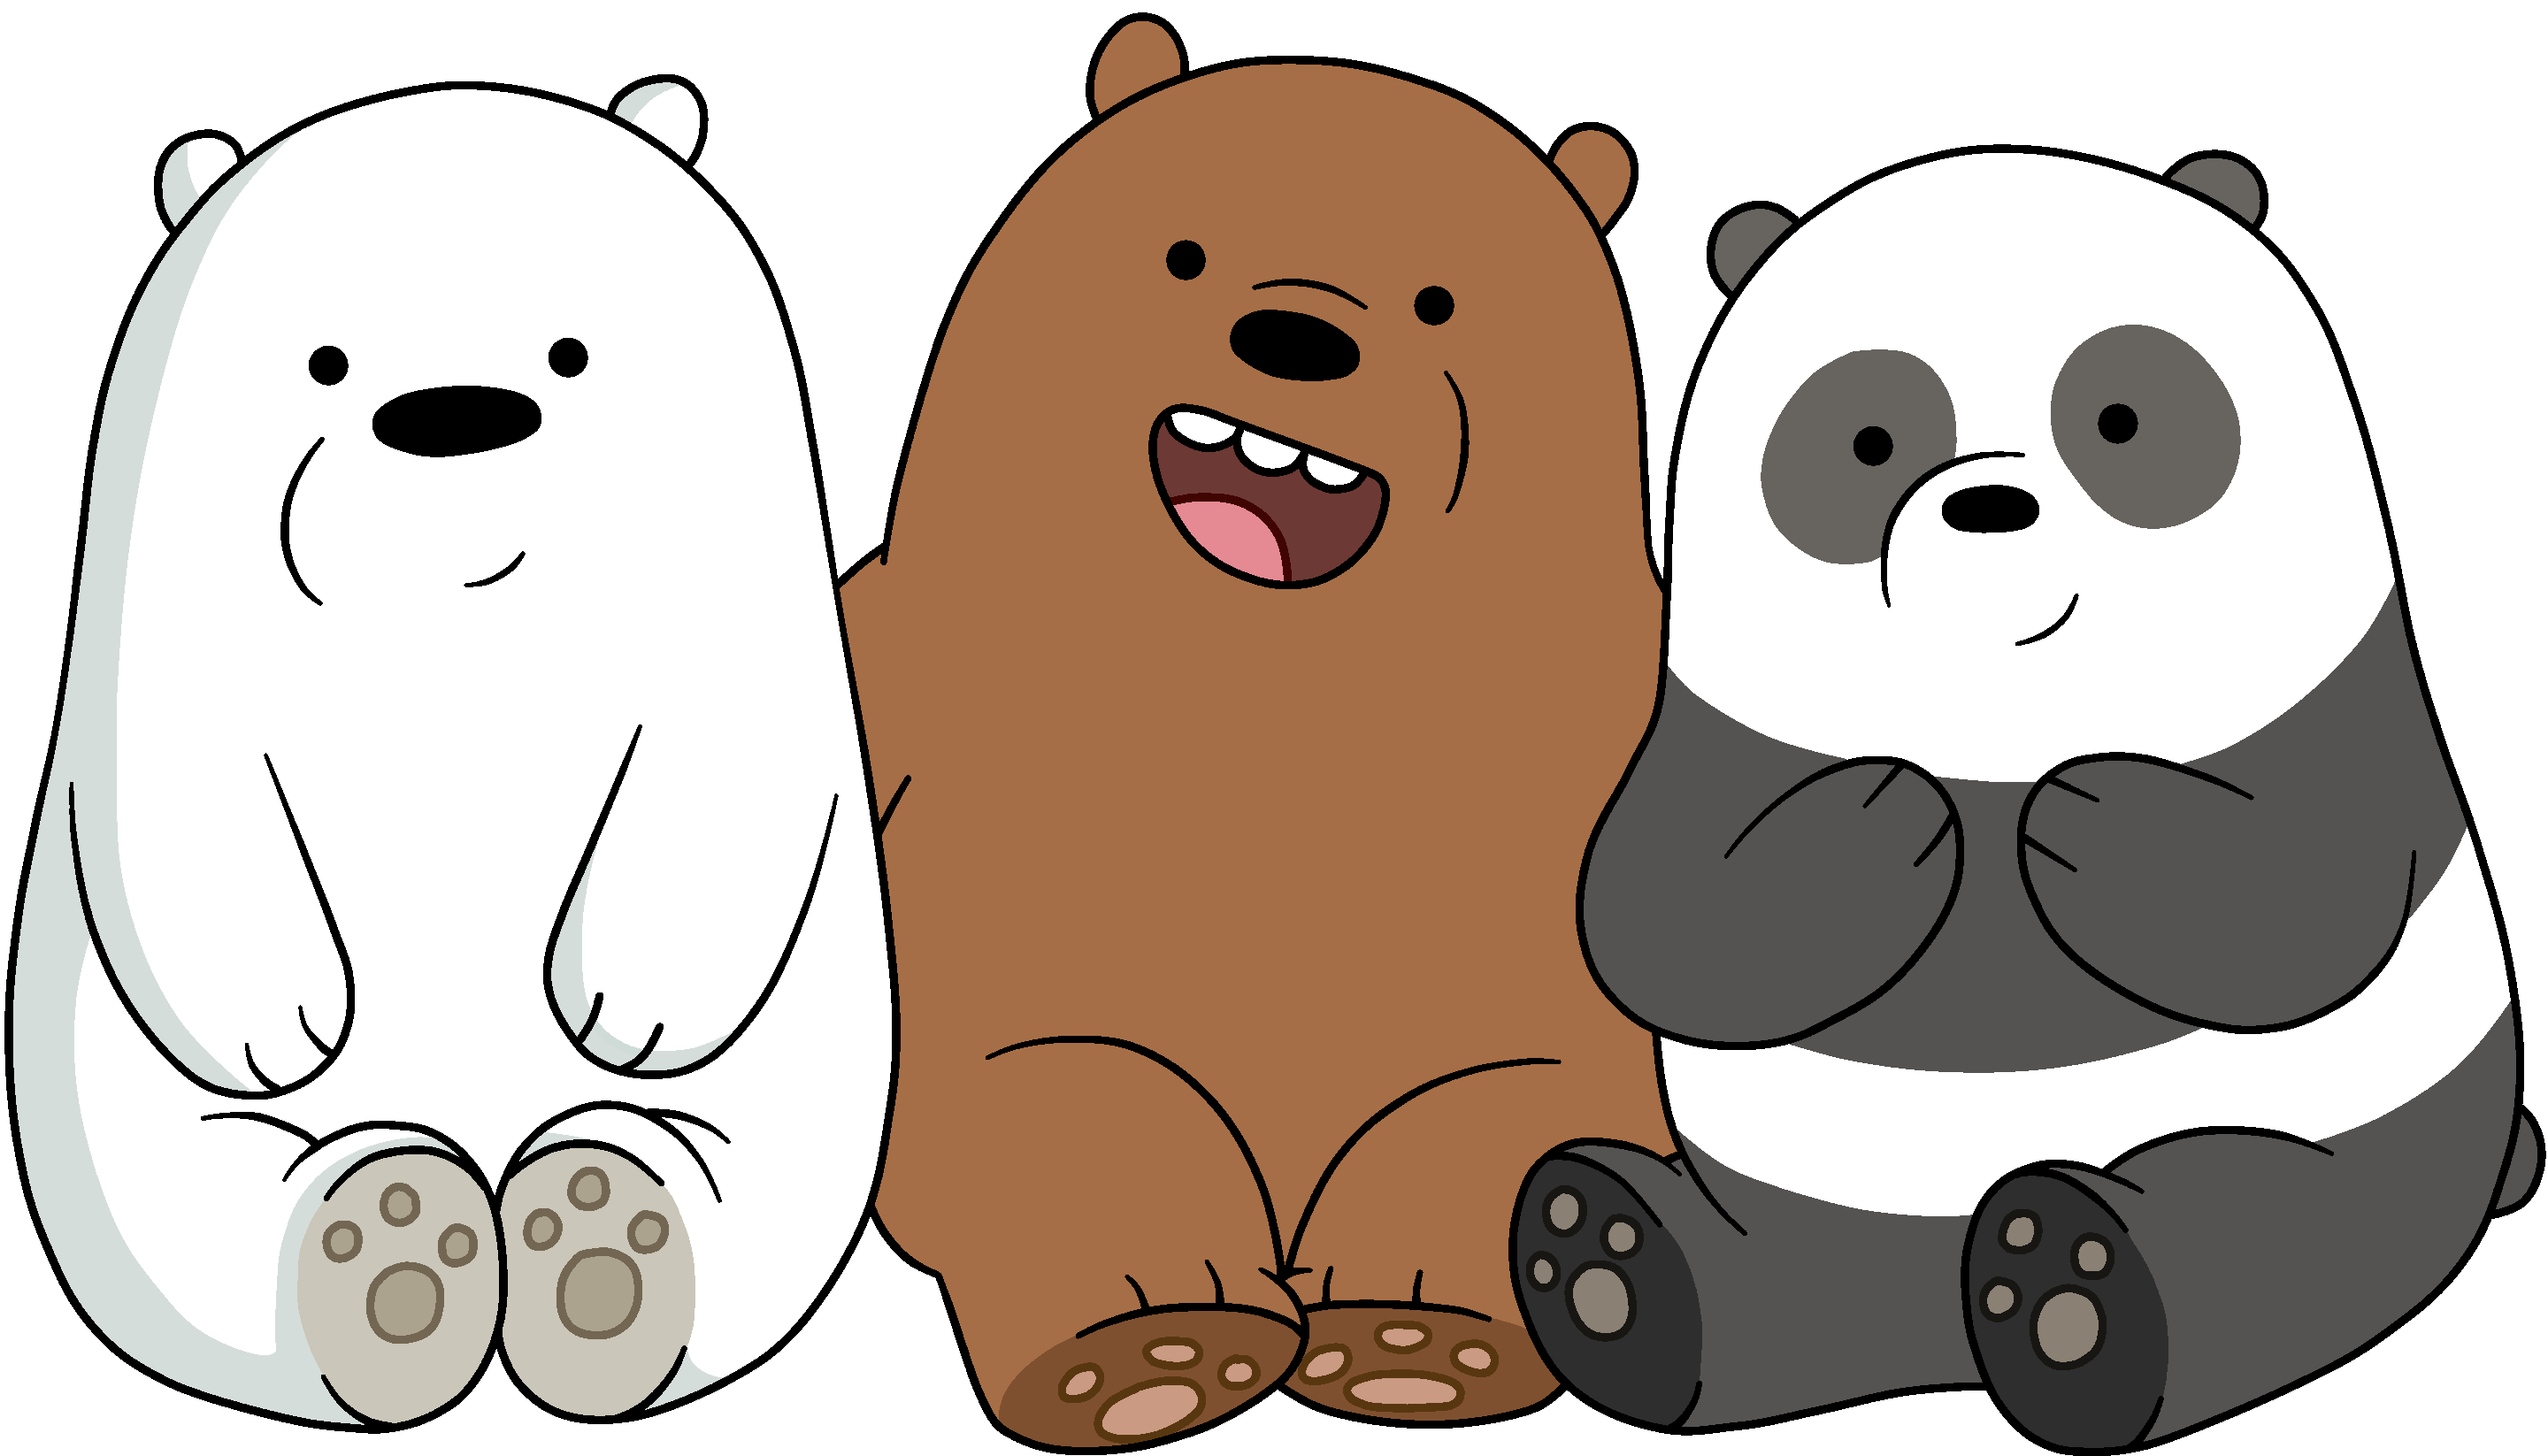 svg royalty free Grizzly clipart little bear. The bears we bare